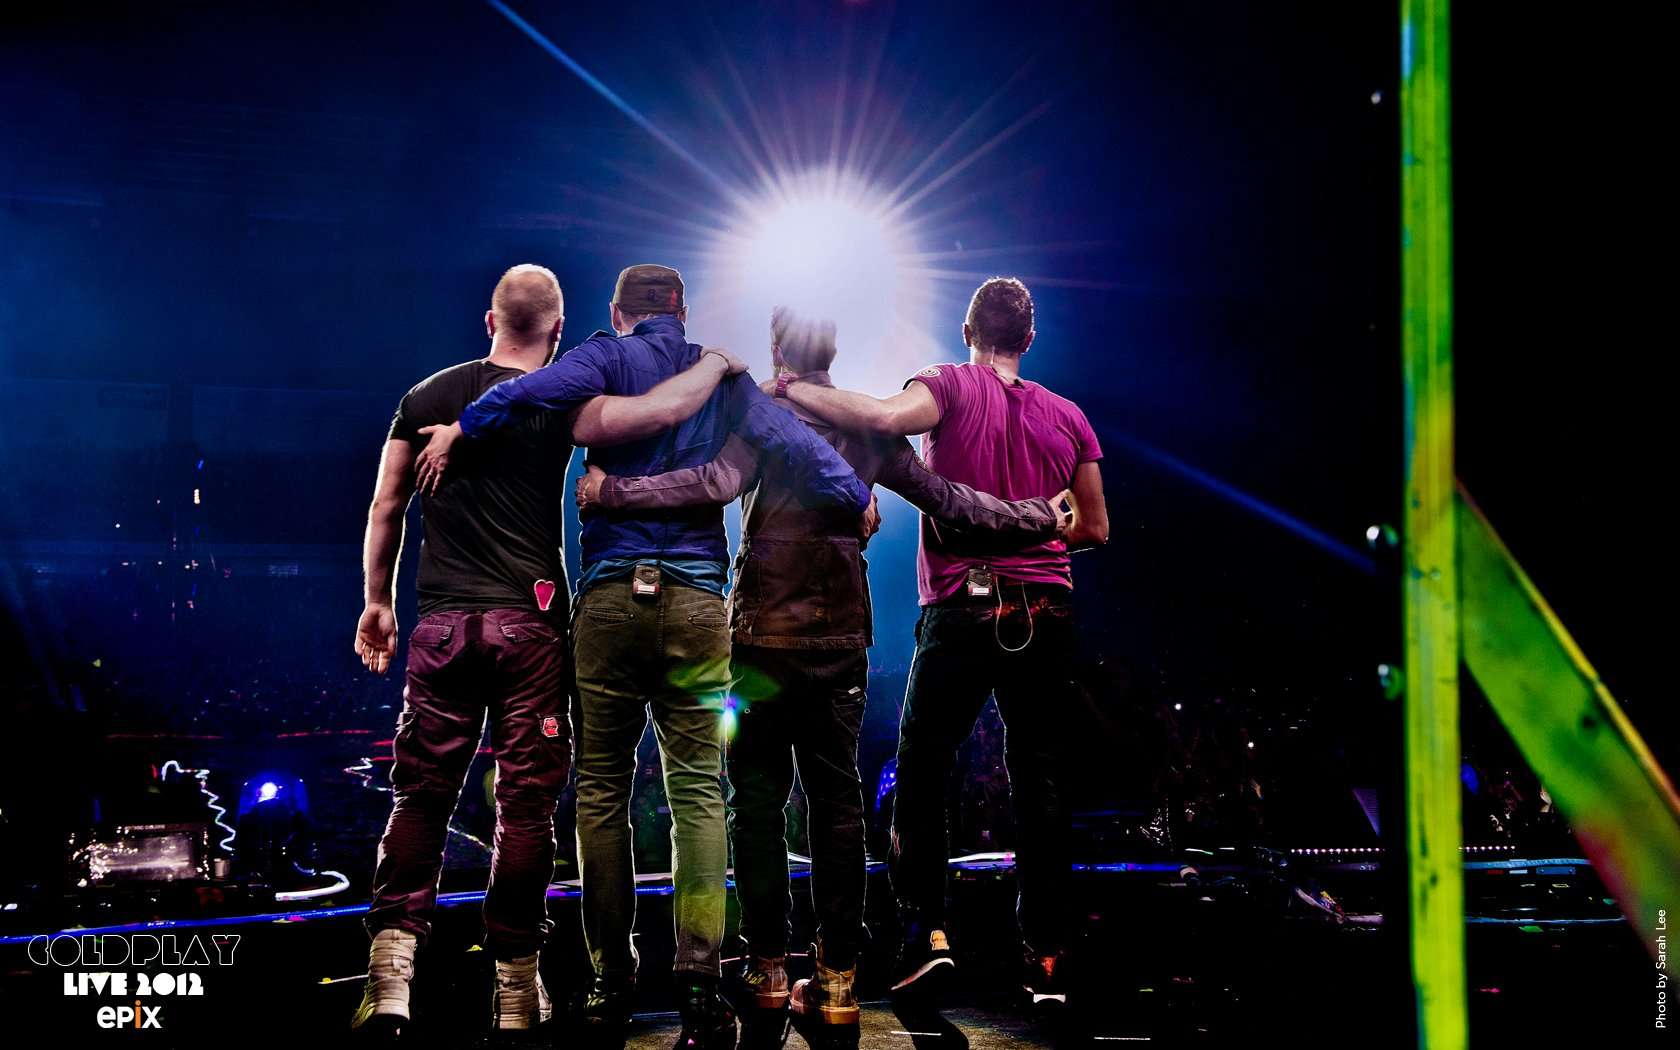 Coldplay_Live_2012_wallpapers_183042